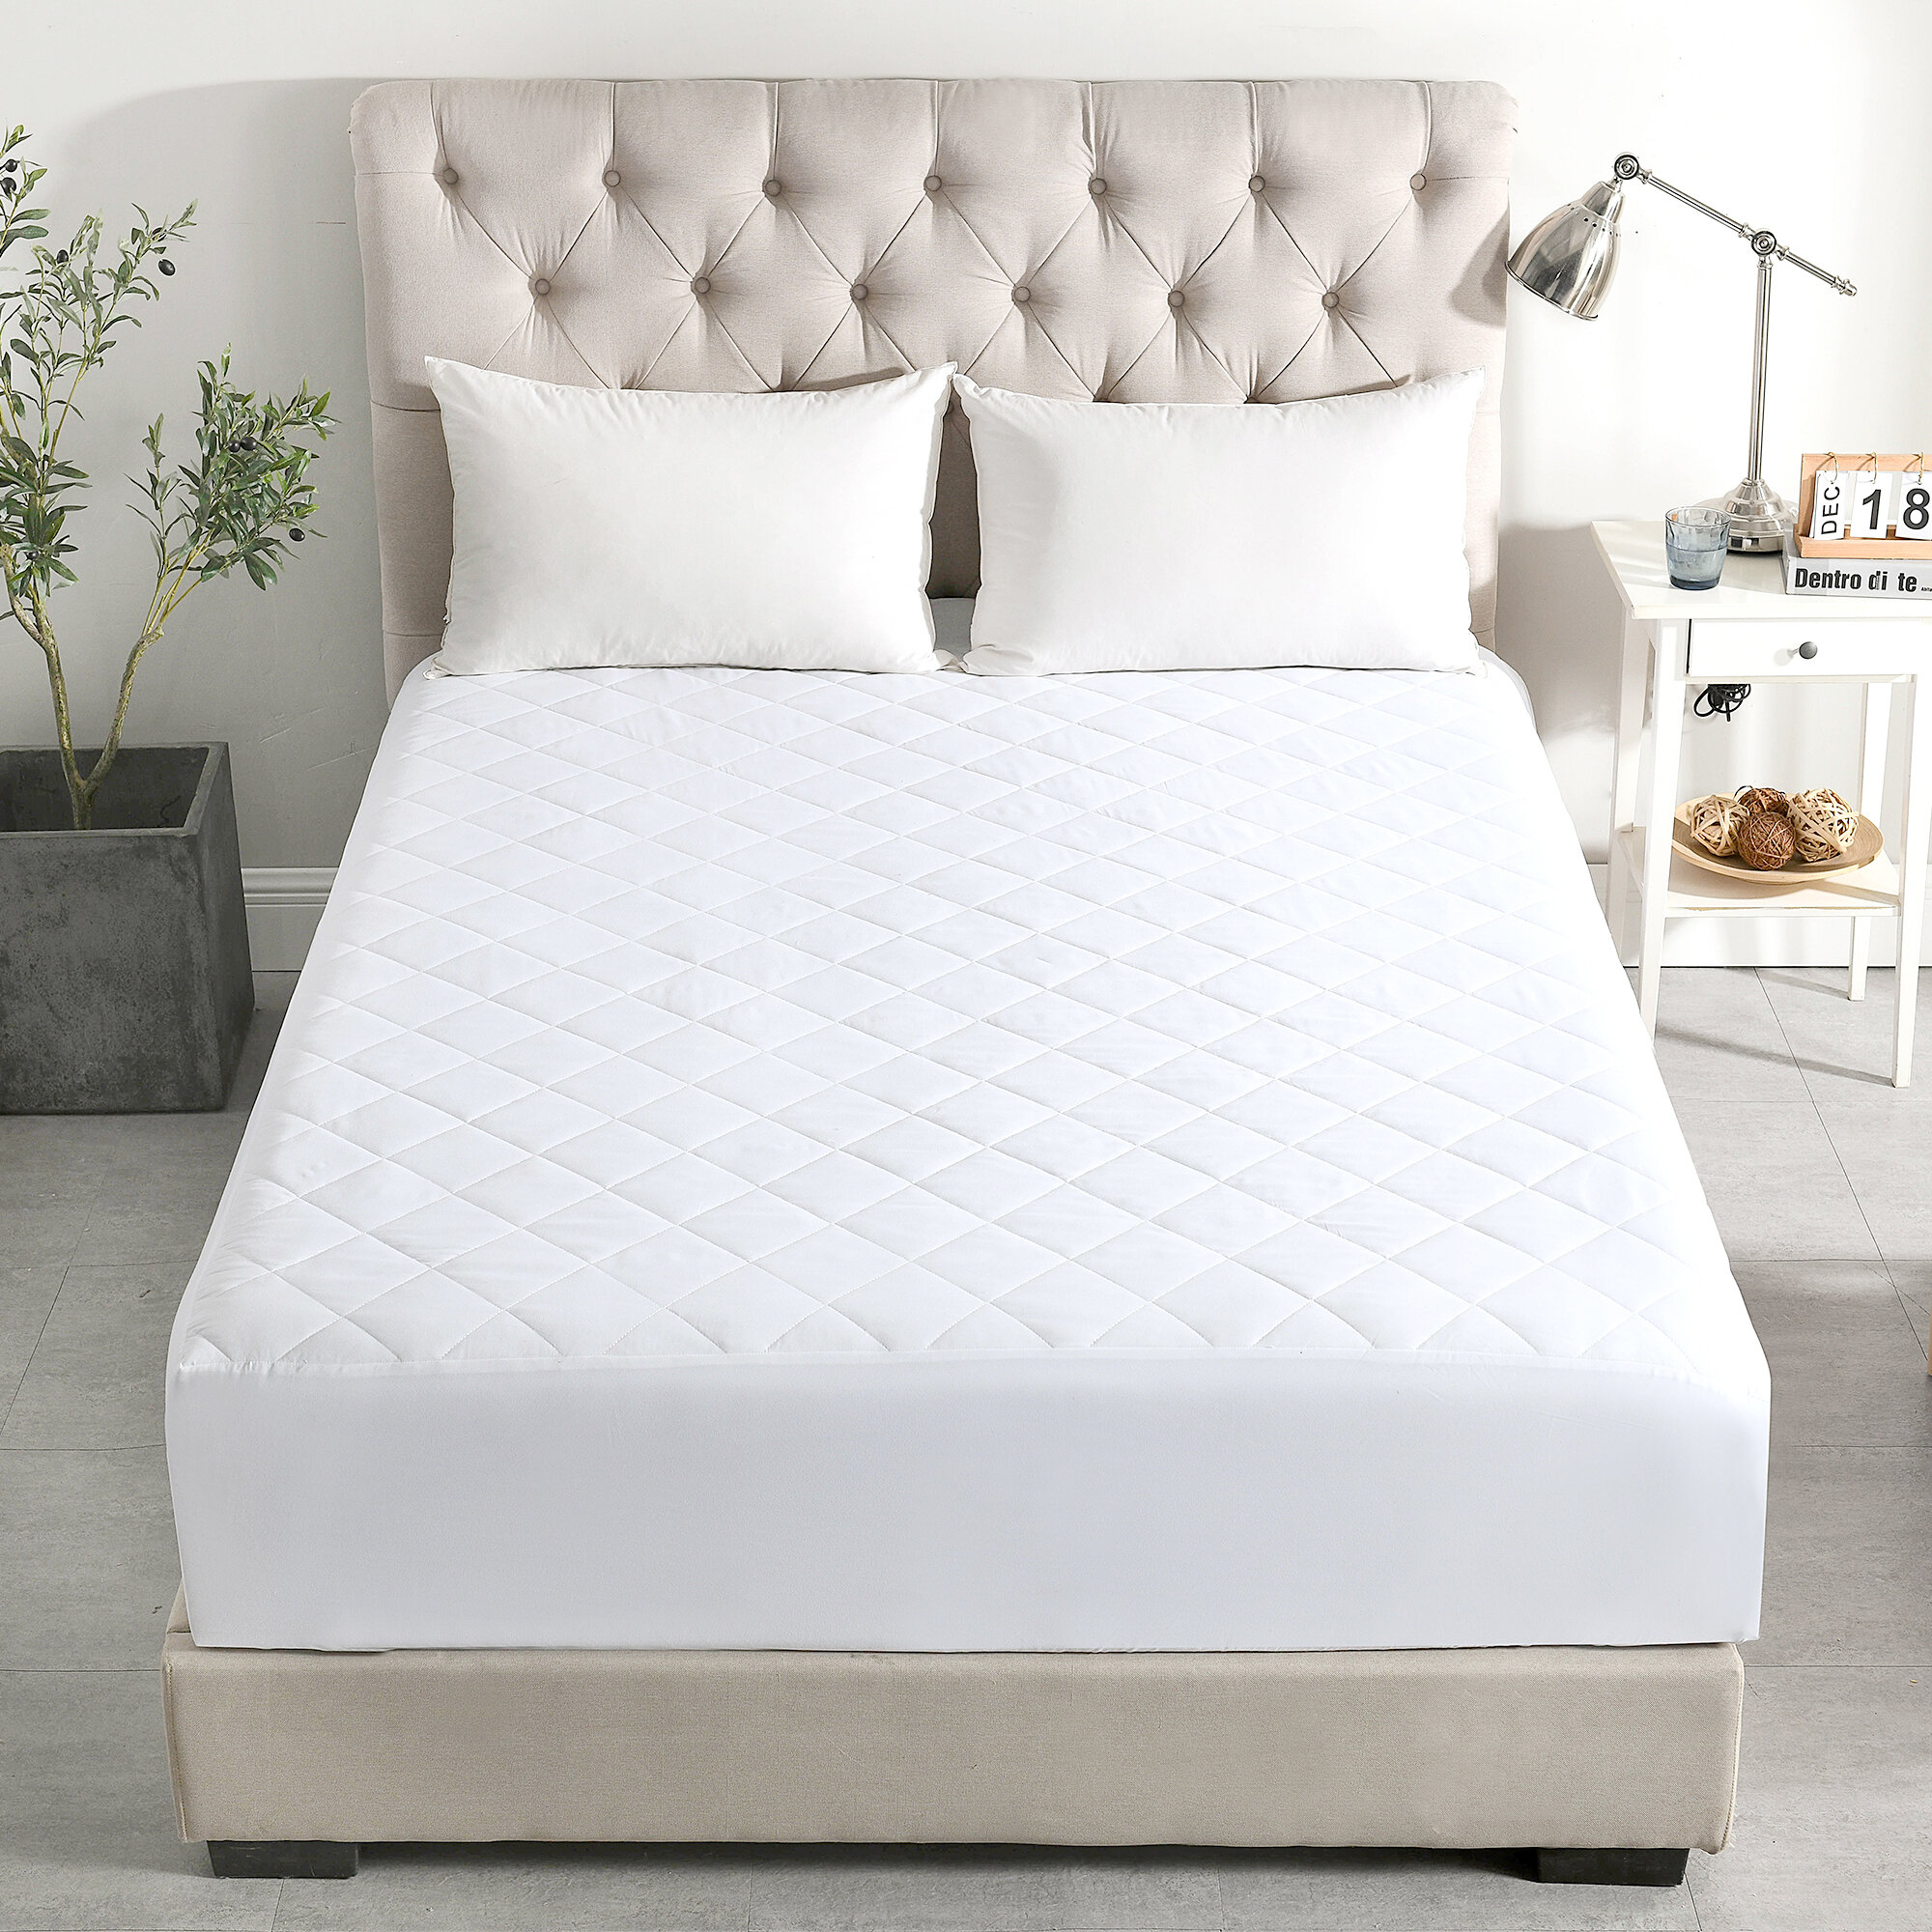 Quick Fit Quilted Mattress Pad Breathable And Soft Waterproof Other Bedding Home Furniture Diy Plastpath Com Br